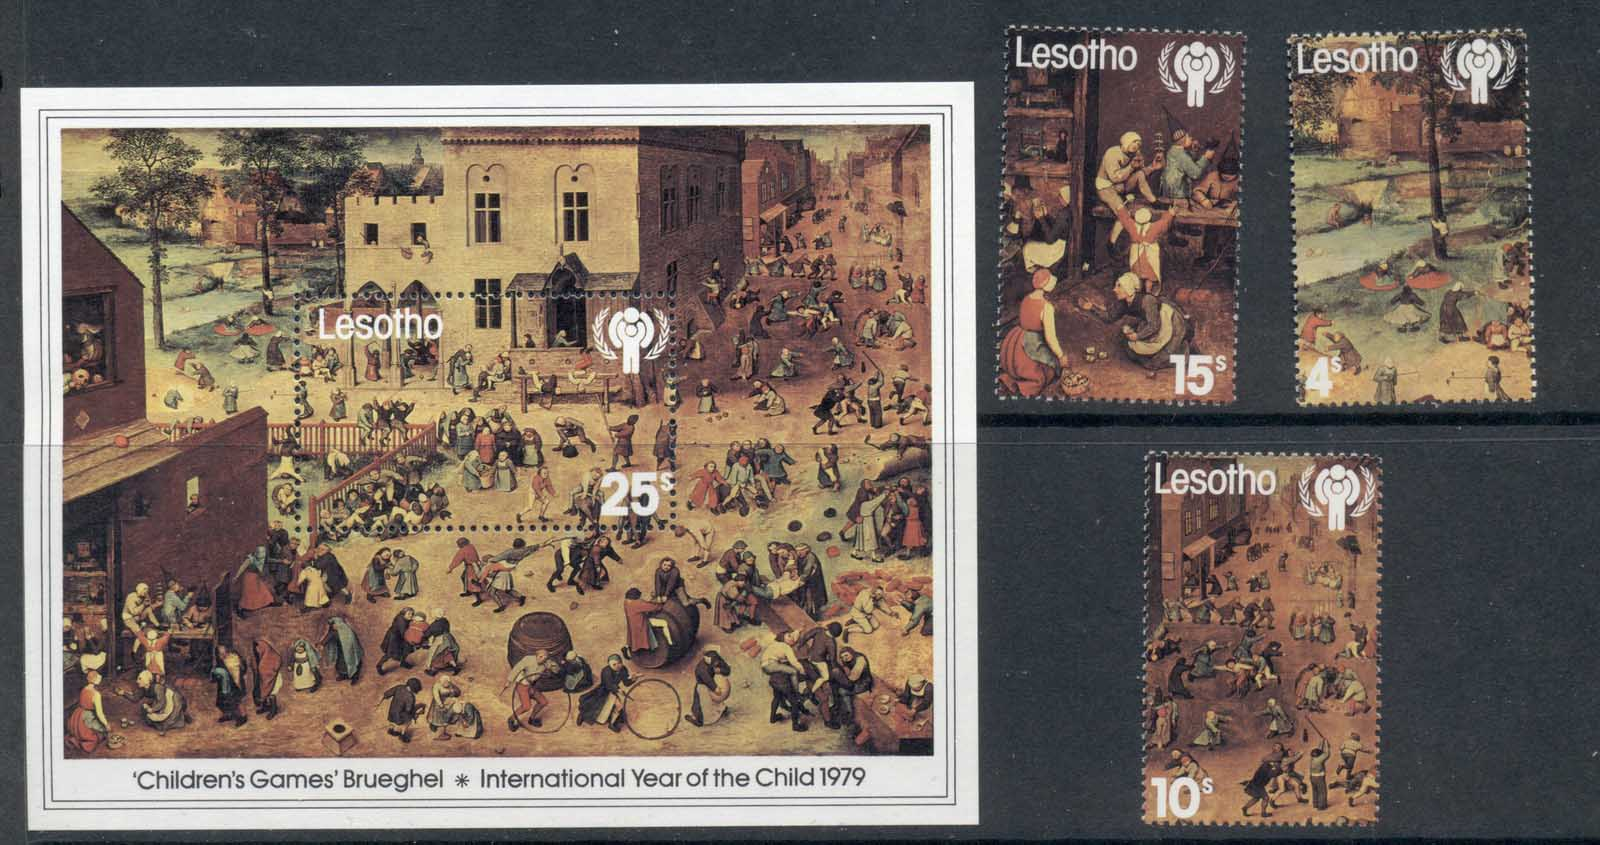 Lesotho 1979 ICY Intl. Year of the Child + MS MUH